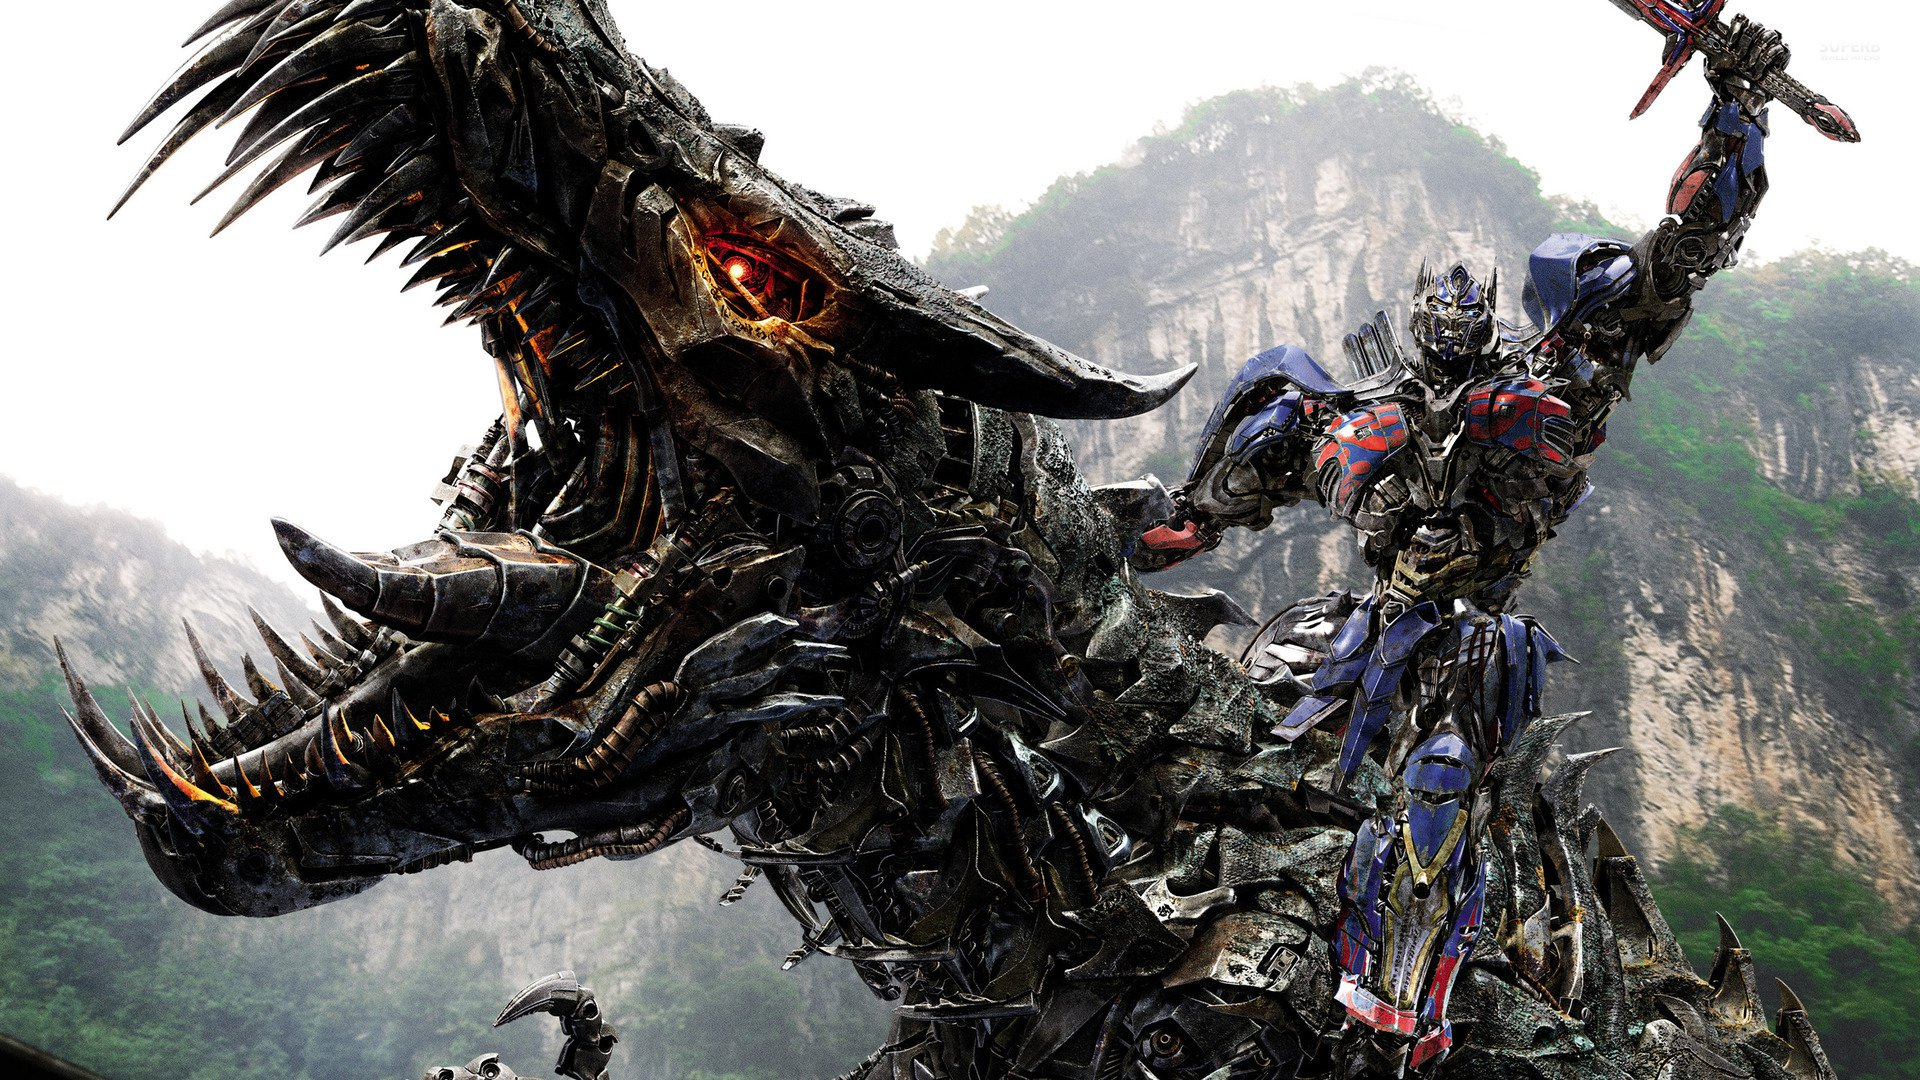 12. Transformers: Age of Extinction